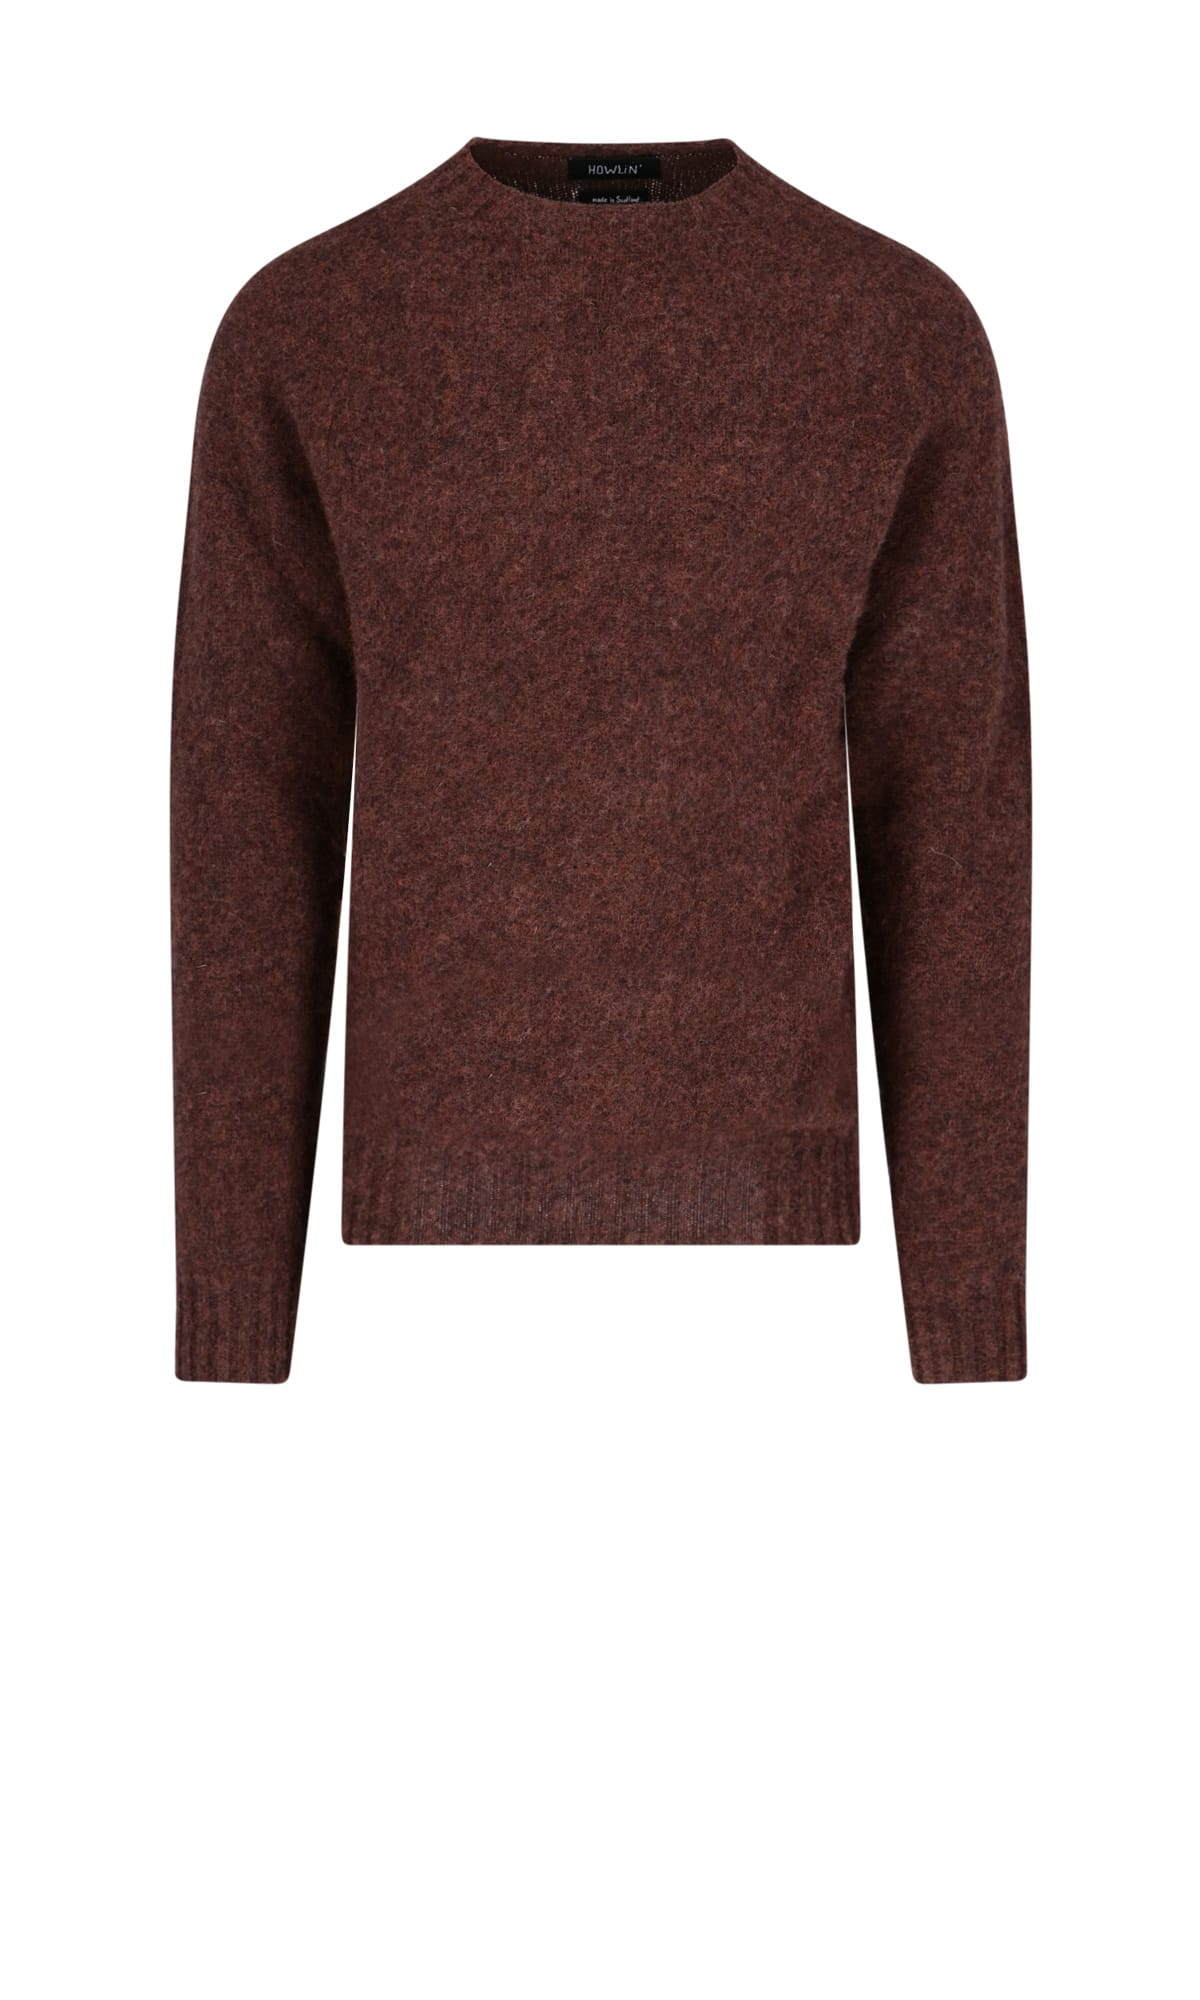 Howlin' Sweater In Brown